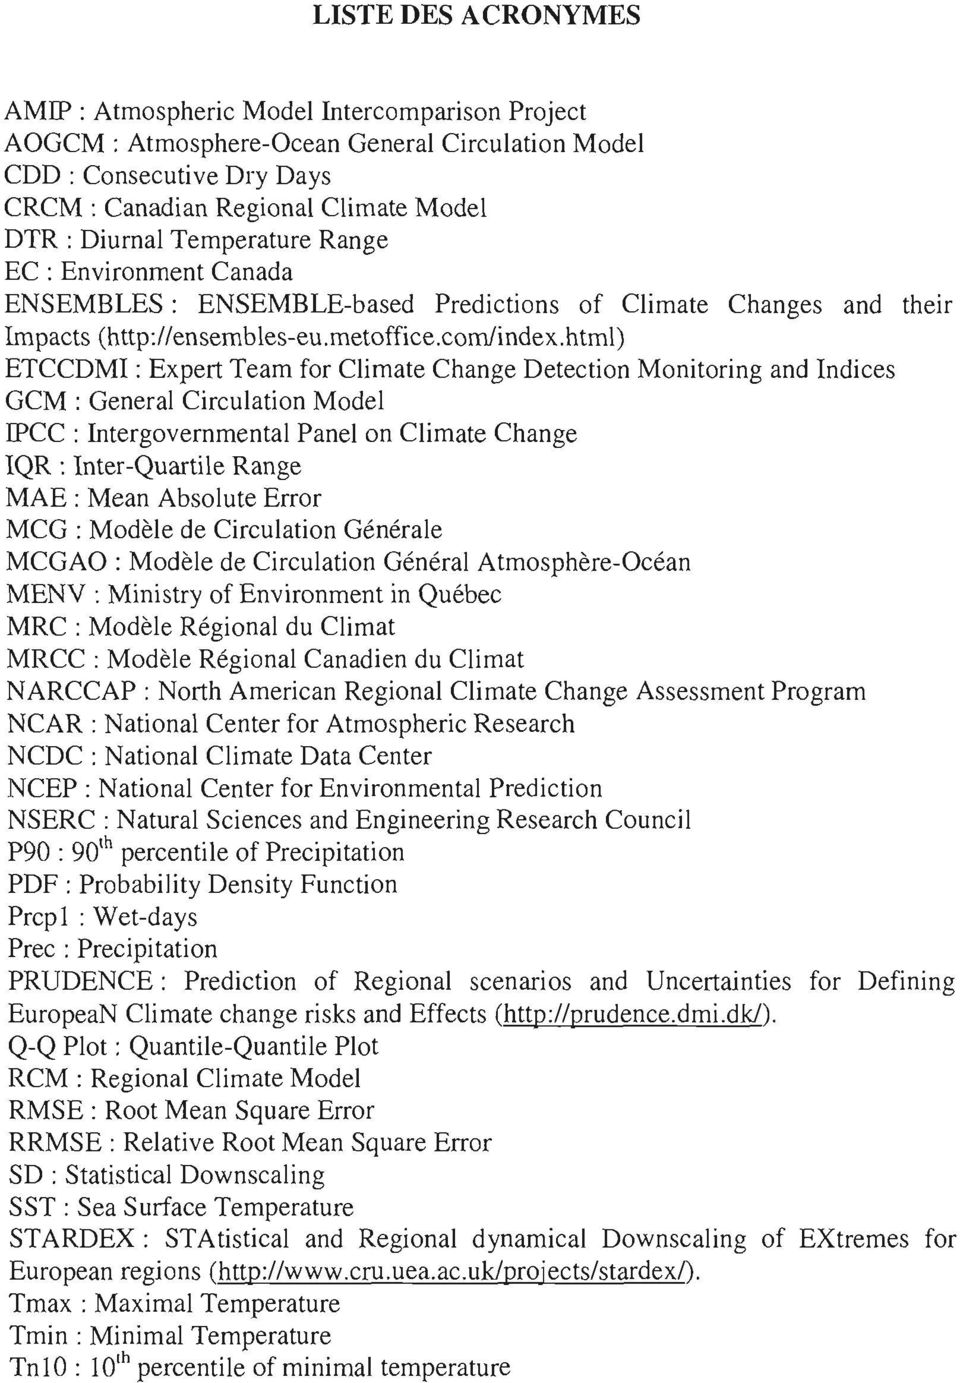 html) ETCCDMI : Expert Team for Climate Change Detection Monitoring and Indices GCM : General Circulation Model IPCC : Intergovernmental Panel on Climate Change IQR : Inter-Quartile Range MAE: Mean